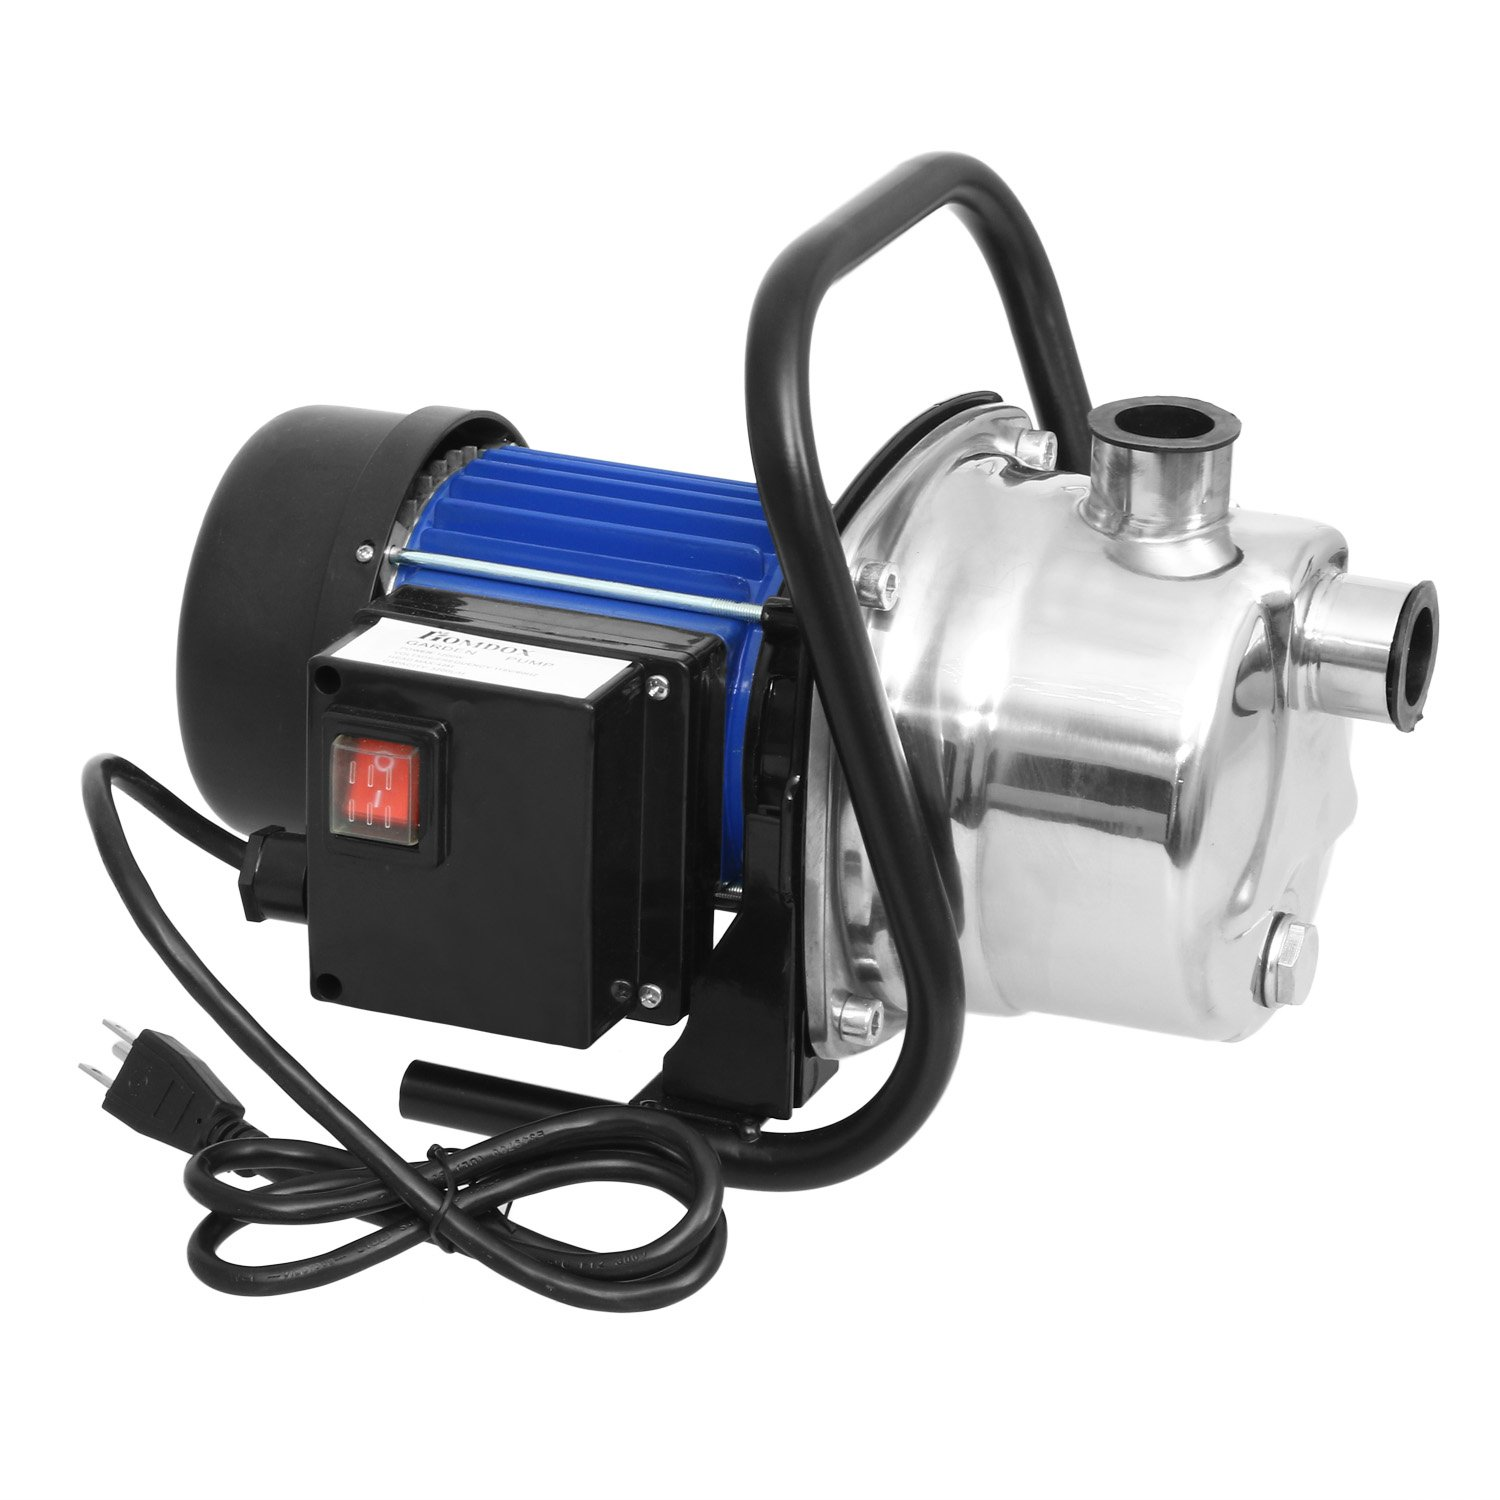 1 HP Sump Pumps Submersible Transfer Water Pump Electric Pool Pump Flood Drain Garden Pond Water Pressure Pump(US STOCK)